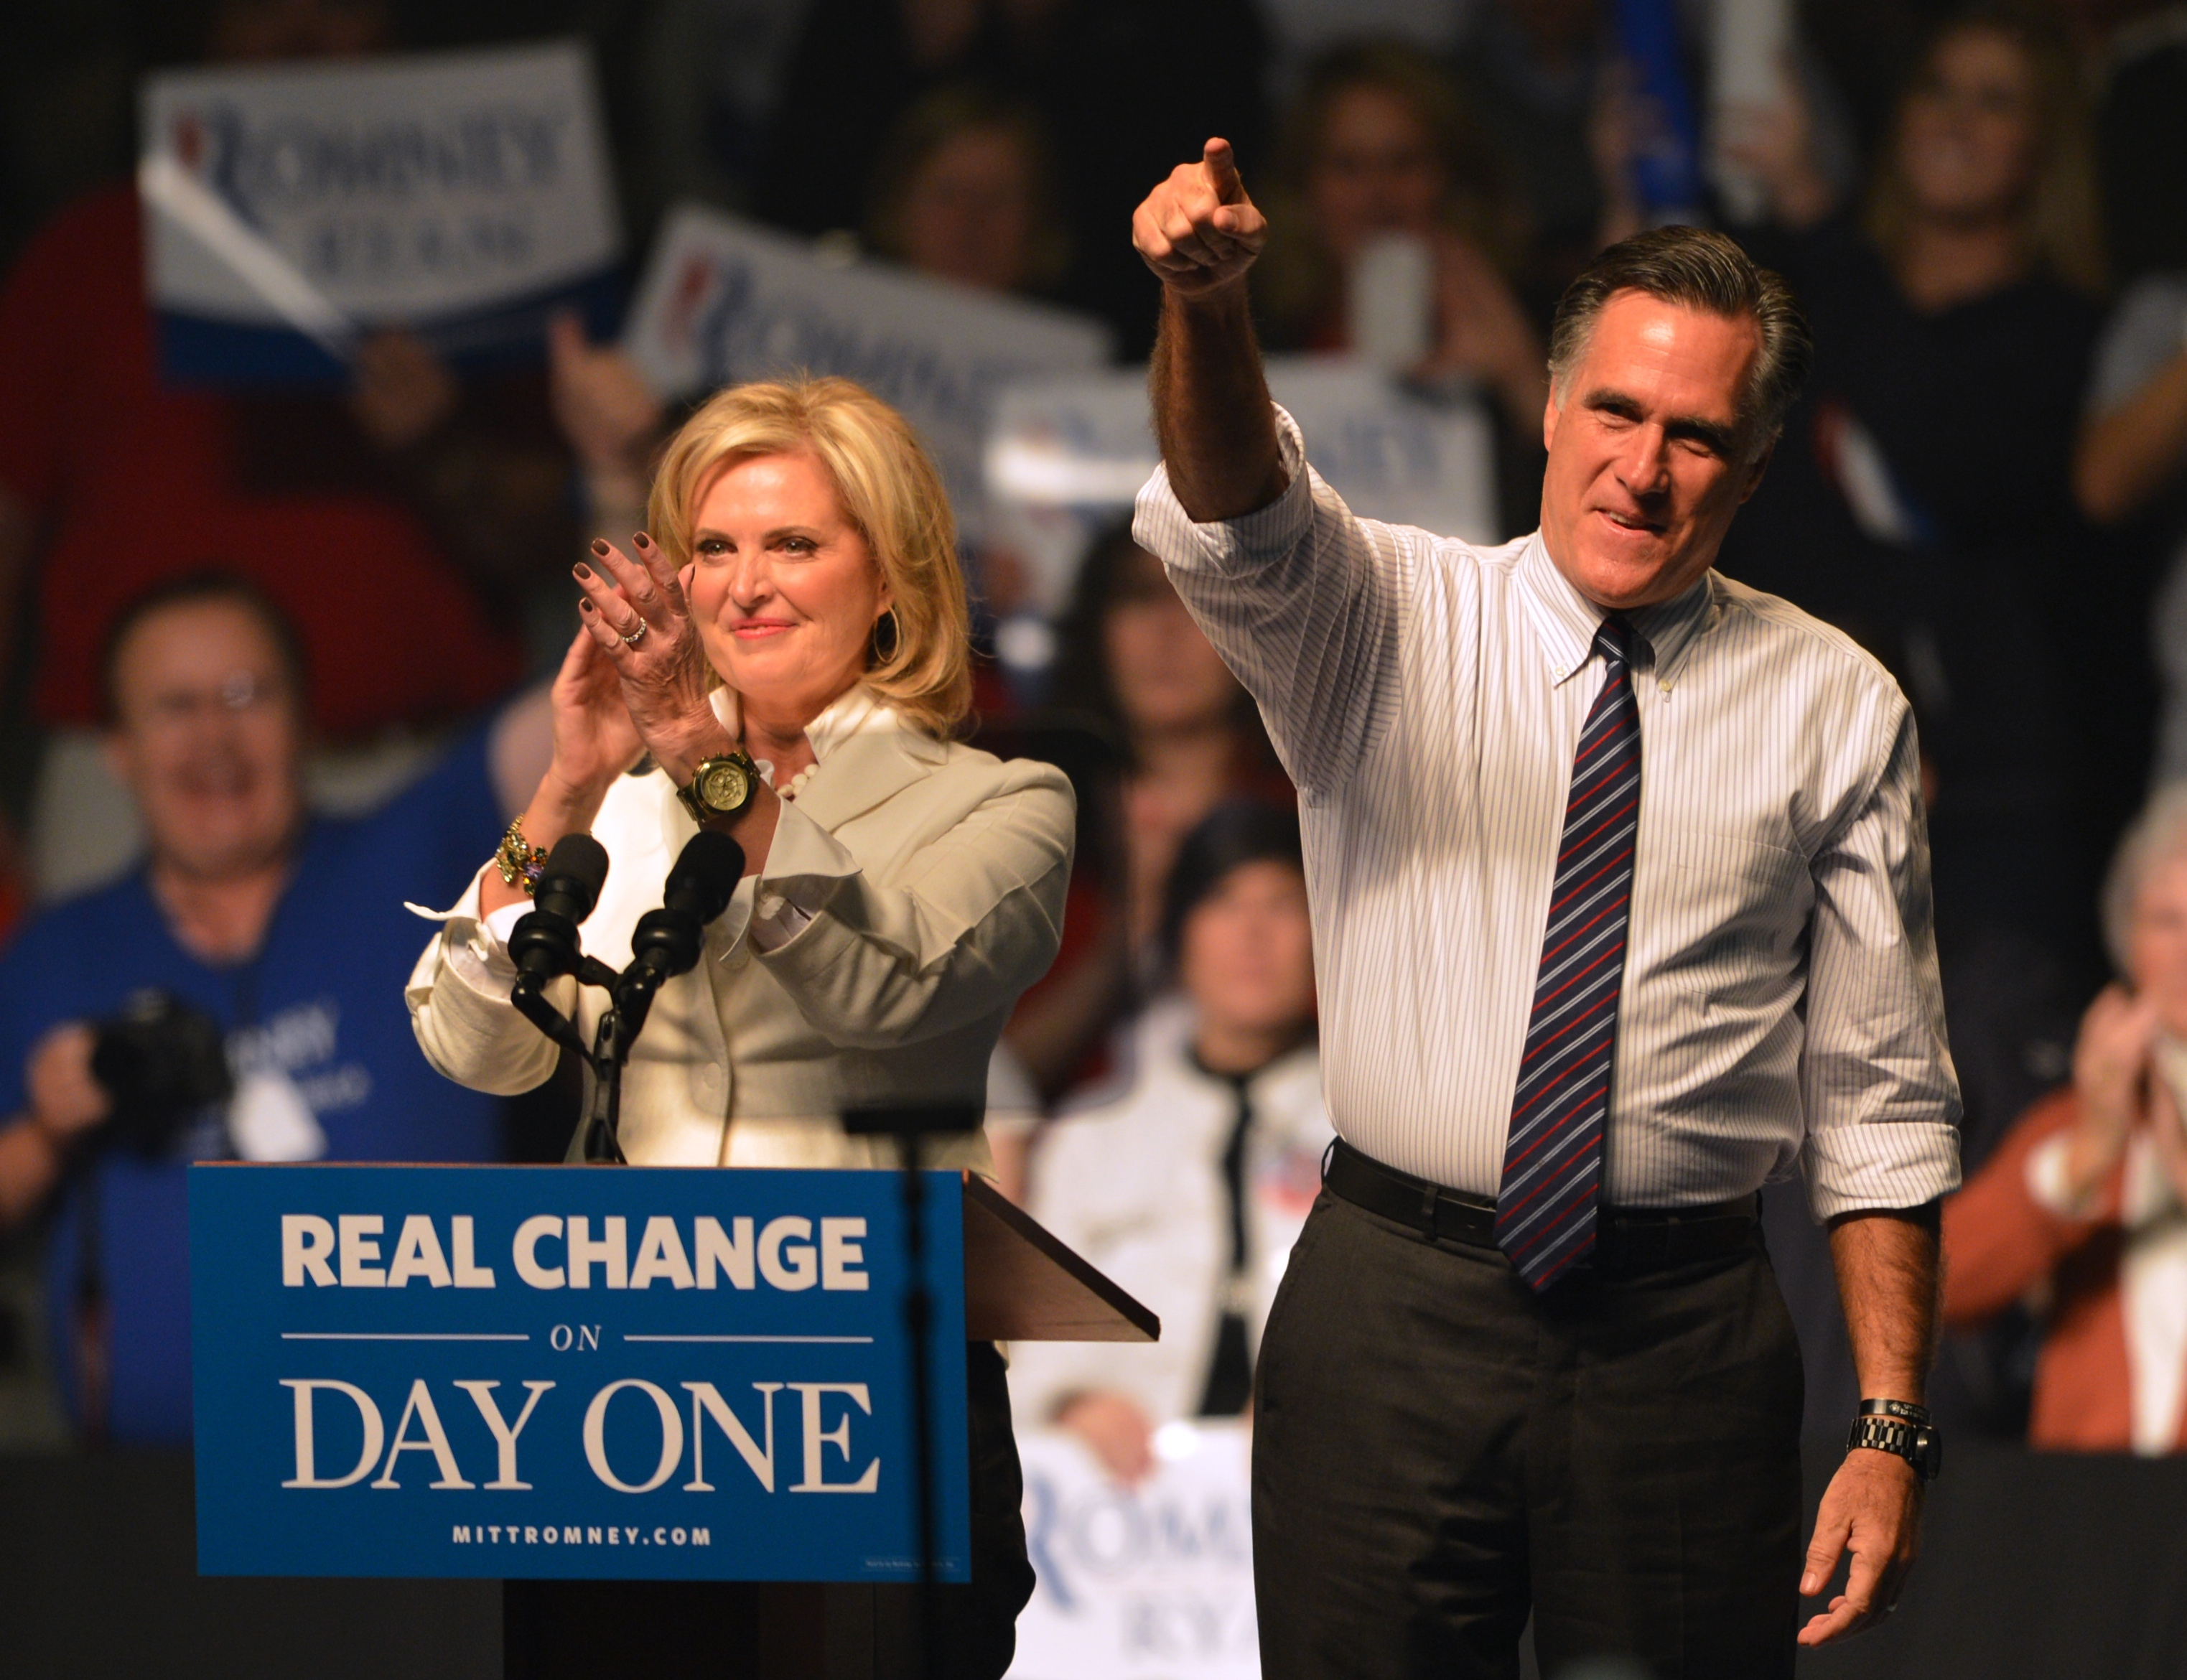 US Republican Presidential candidate Mitt Romney (L) and his wife Ann Romney (R) at a rally late November 5, 2012 at the Verizon Wireless Arena in Manchester, New Hampshire.